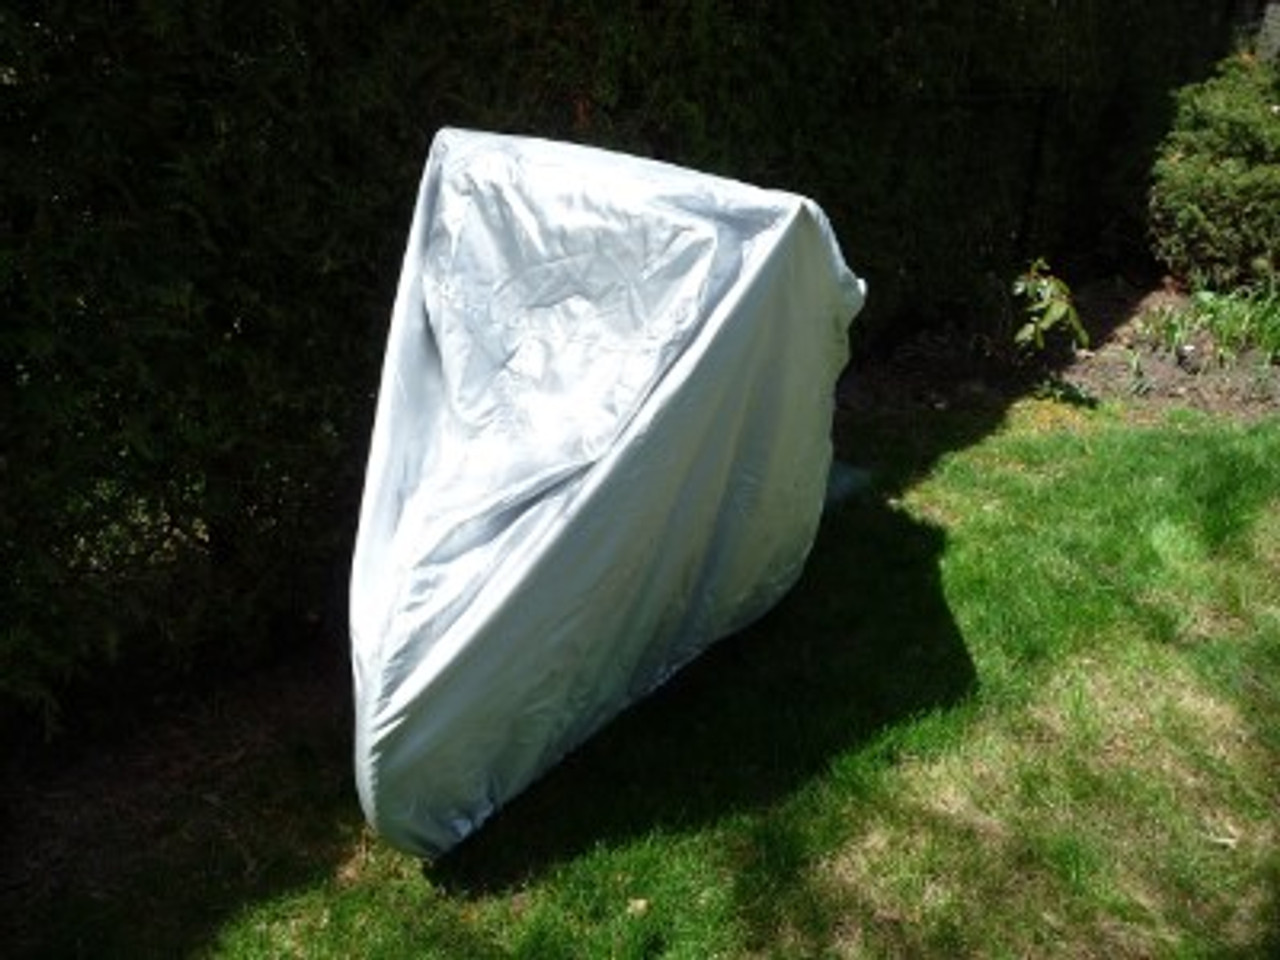 Weather Guard Bicycle cover photo front view